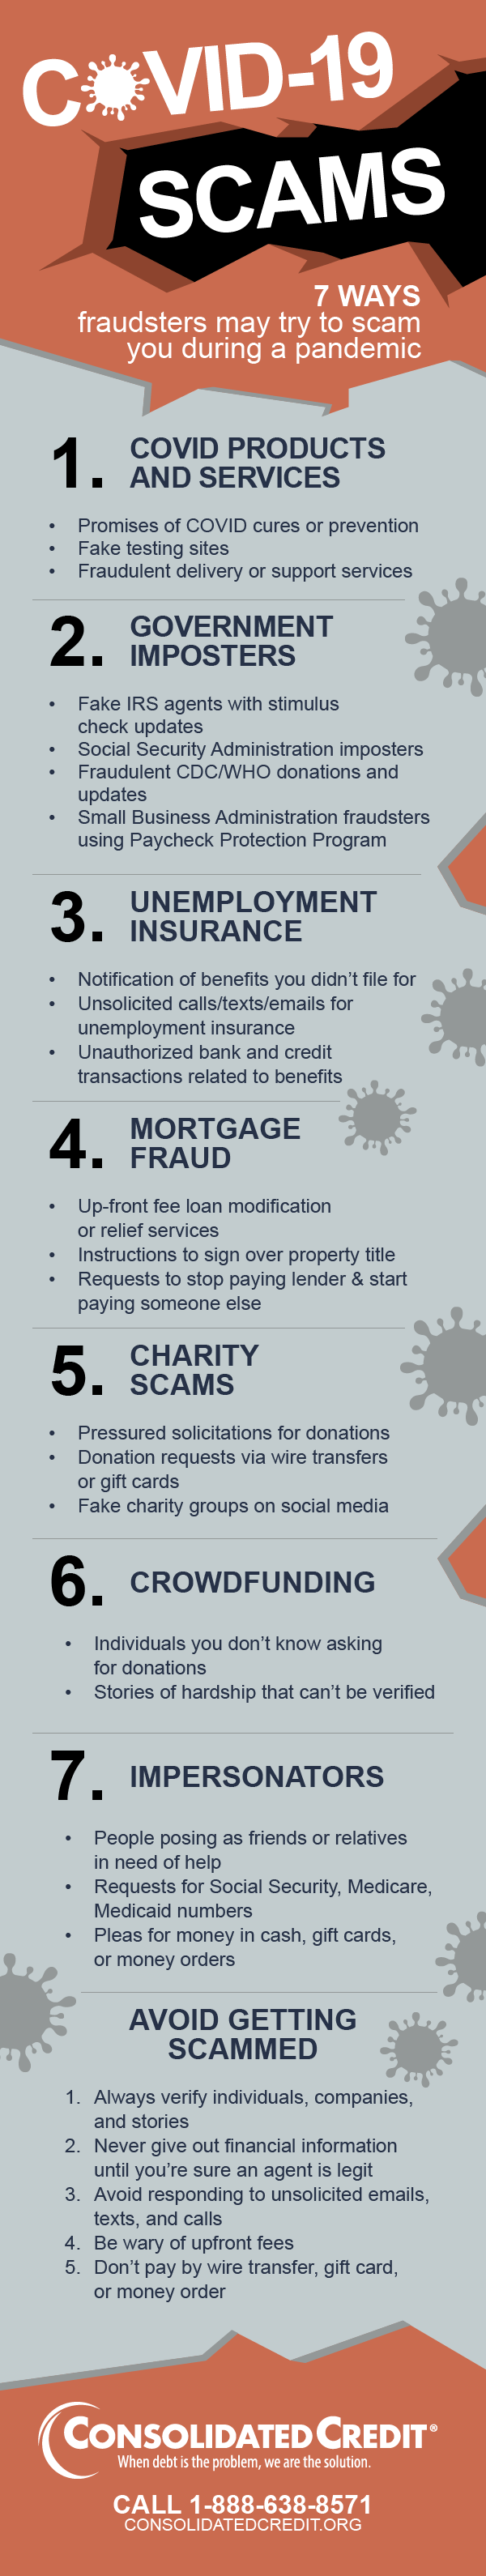 Consolidated Credit infographic for COVID-19 scam alert